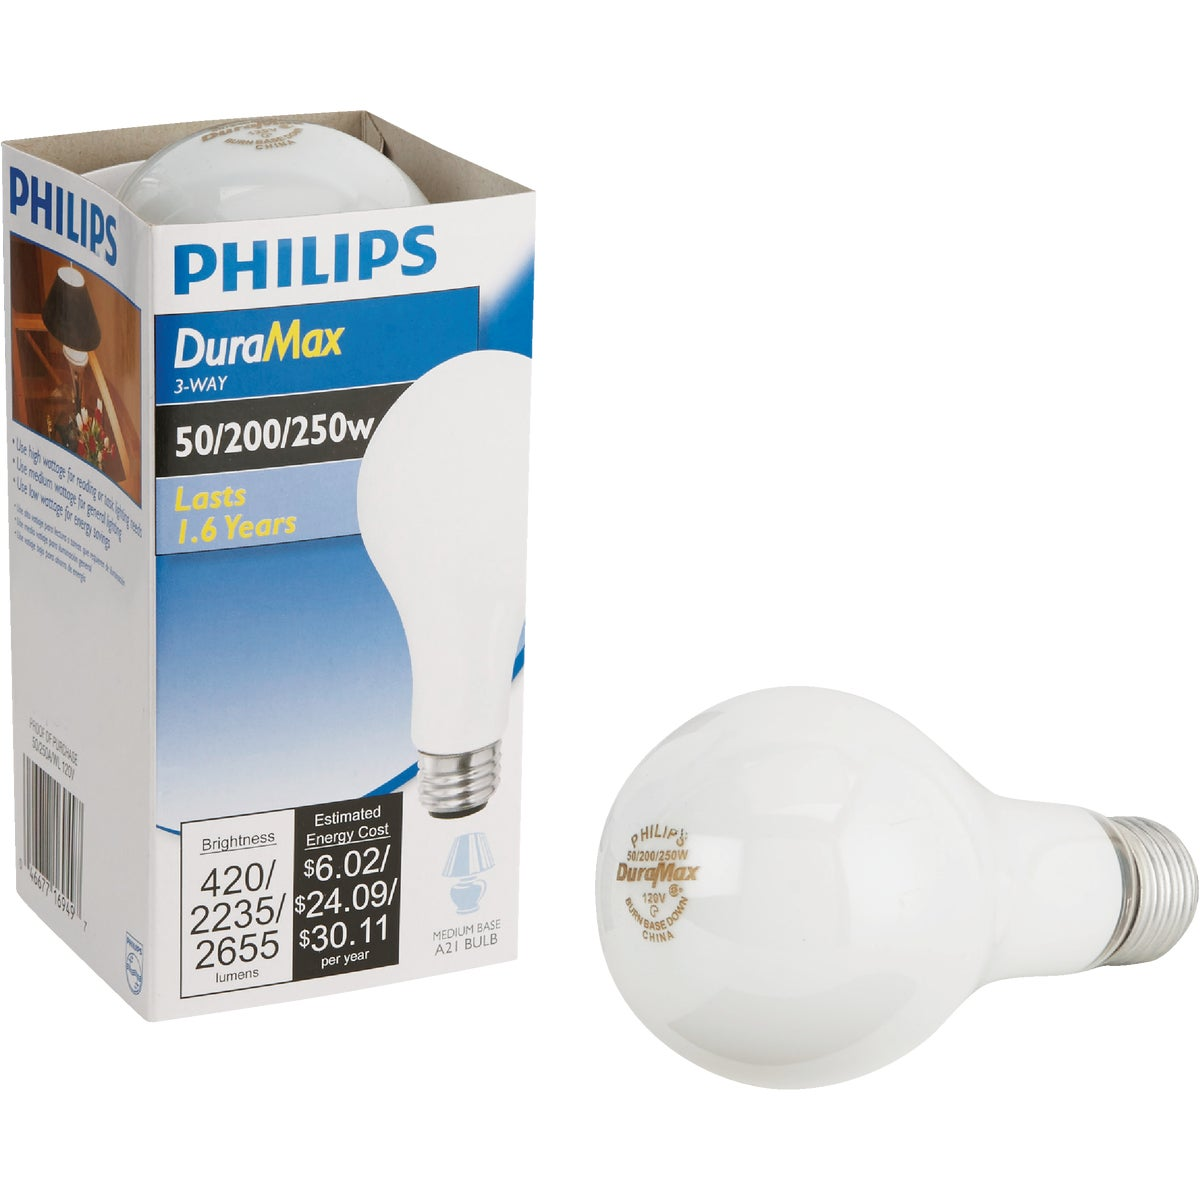 50/250W SW 3-WAY BULB - 97482 by G E Lighting